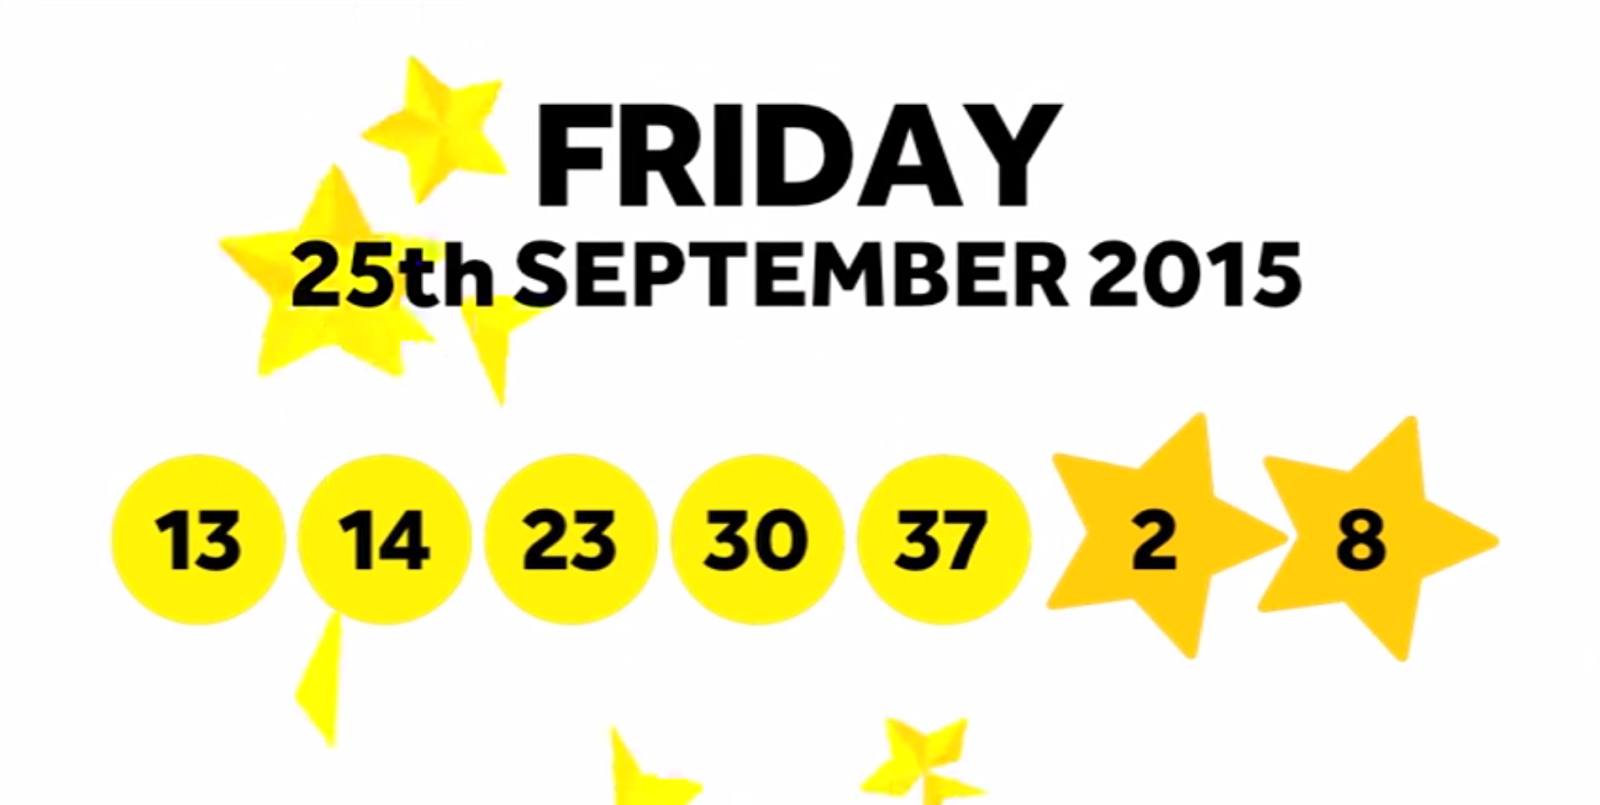 The National Lottery Friday 'EuroMillions' draw results from 25th September 2015 - 13,14,23,30,37 Lucky Stars 2, 8